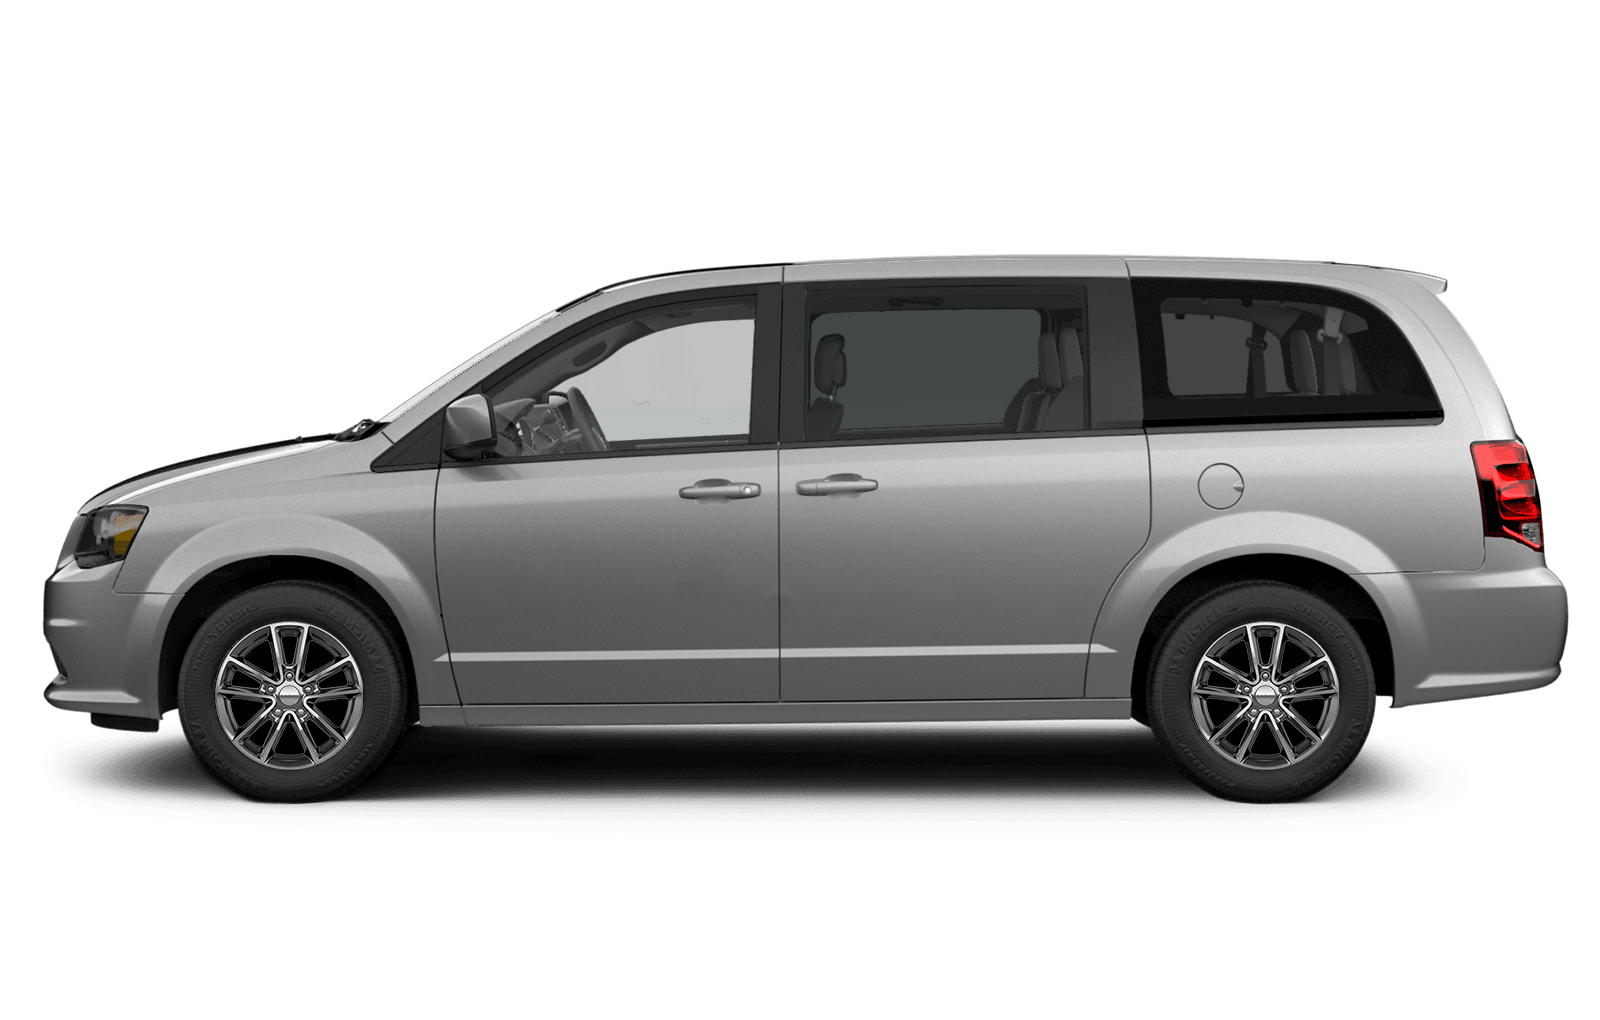 11 All New New 2019 Dodge Caravan Gt Overview And Price Style for New 2019 Dodge Caravan Gt Overview And Price